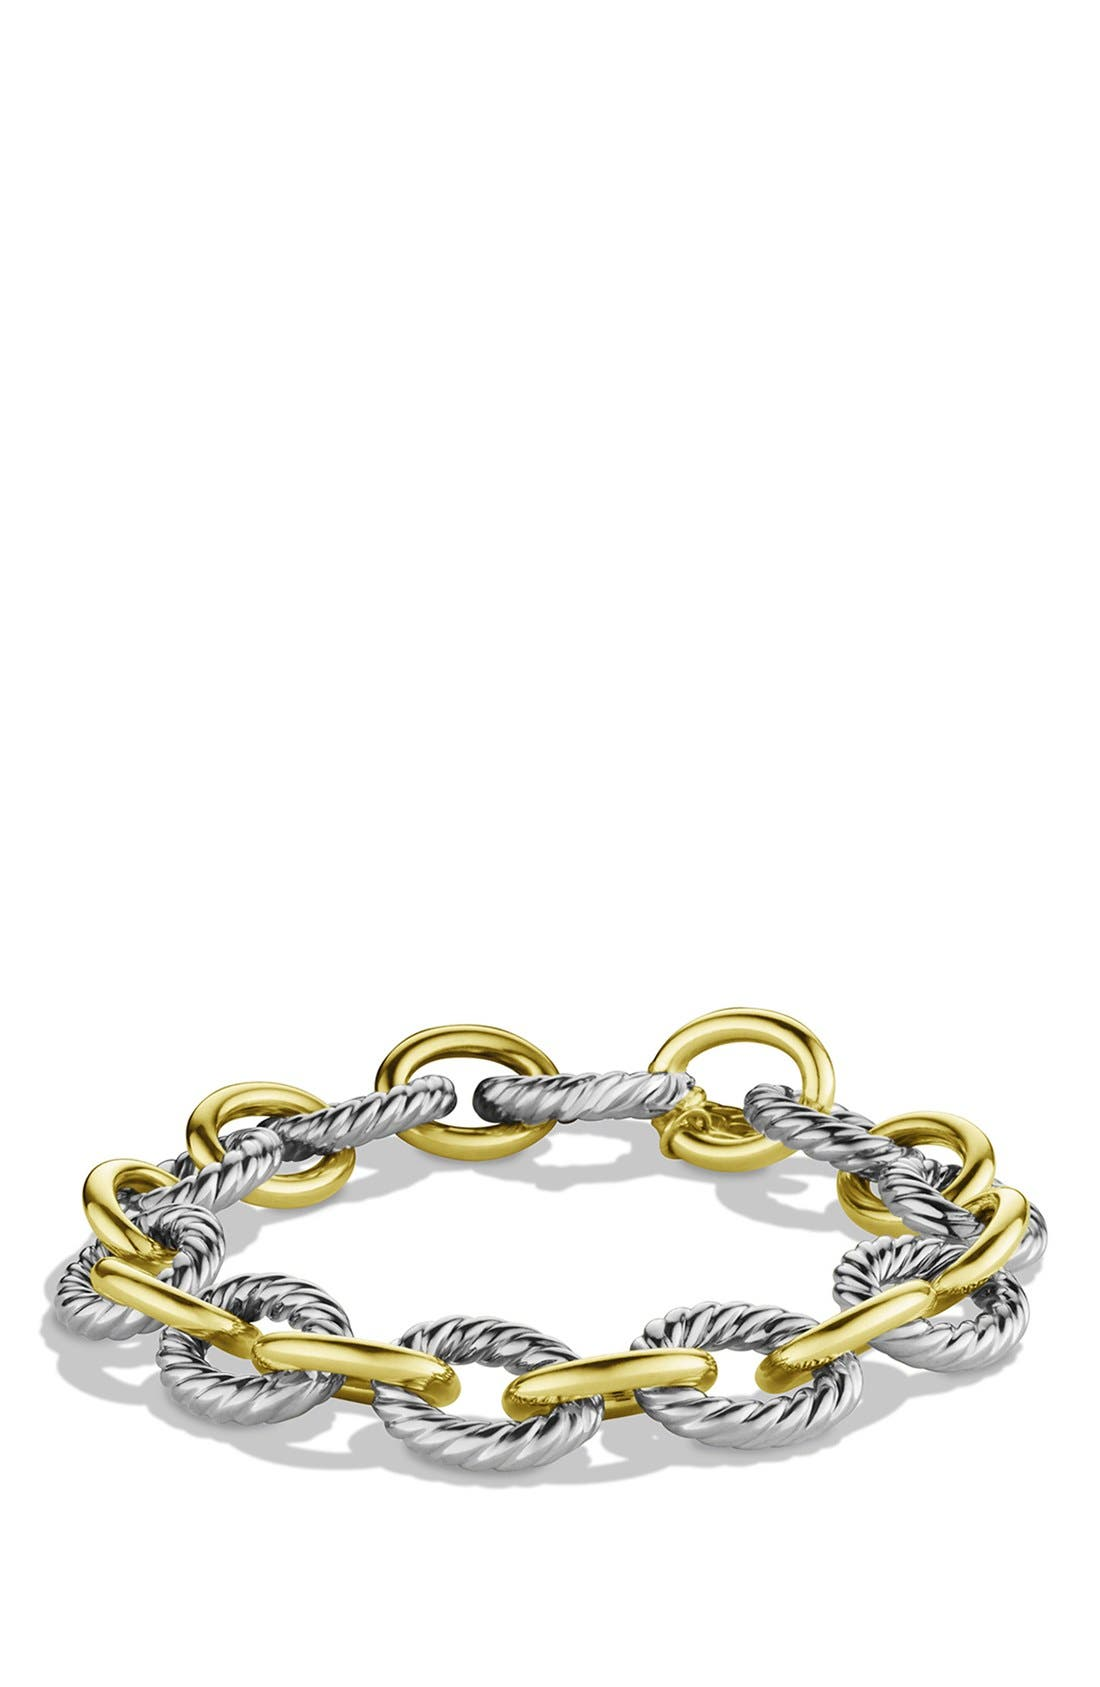 DAVID YURMAN Oval Large Link Bracelet with Gold